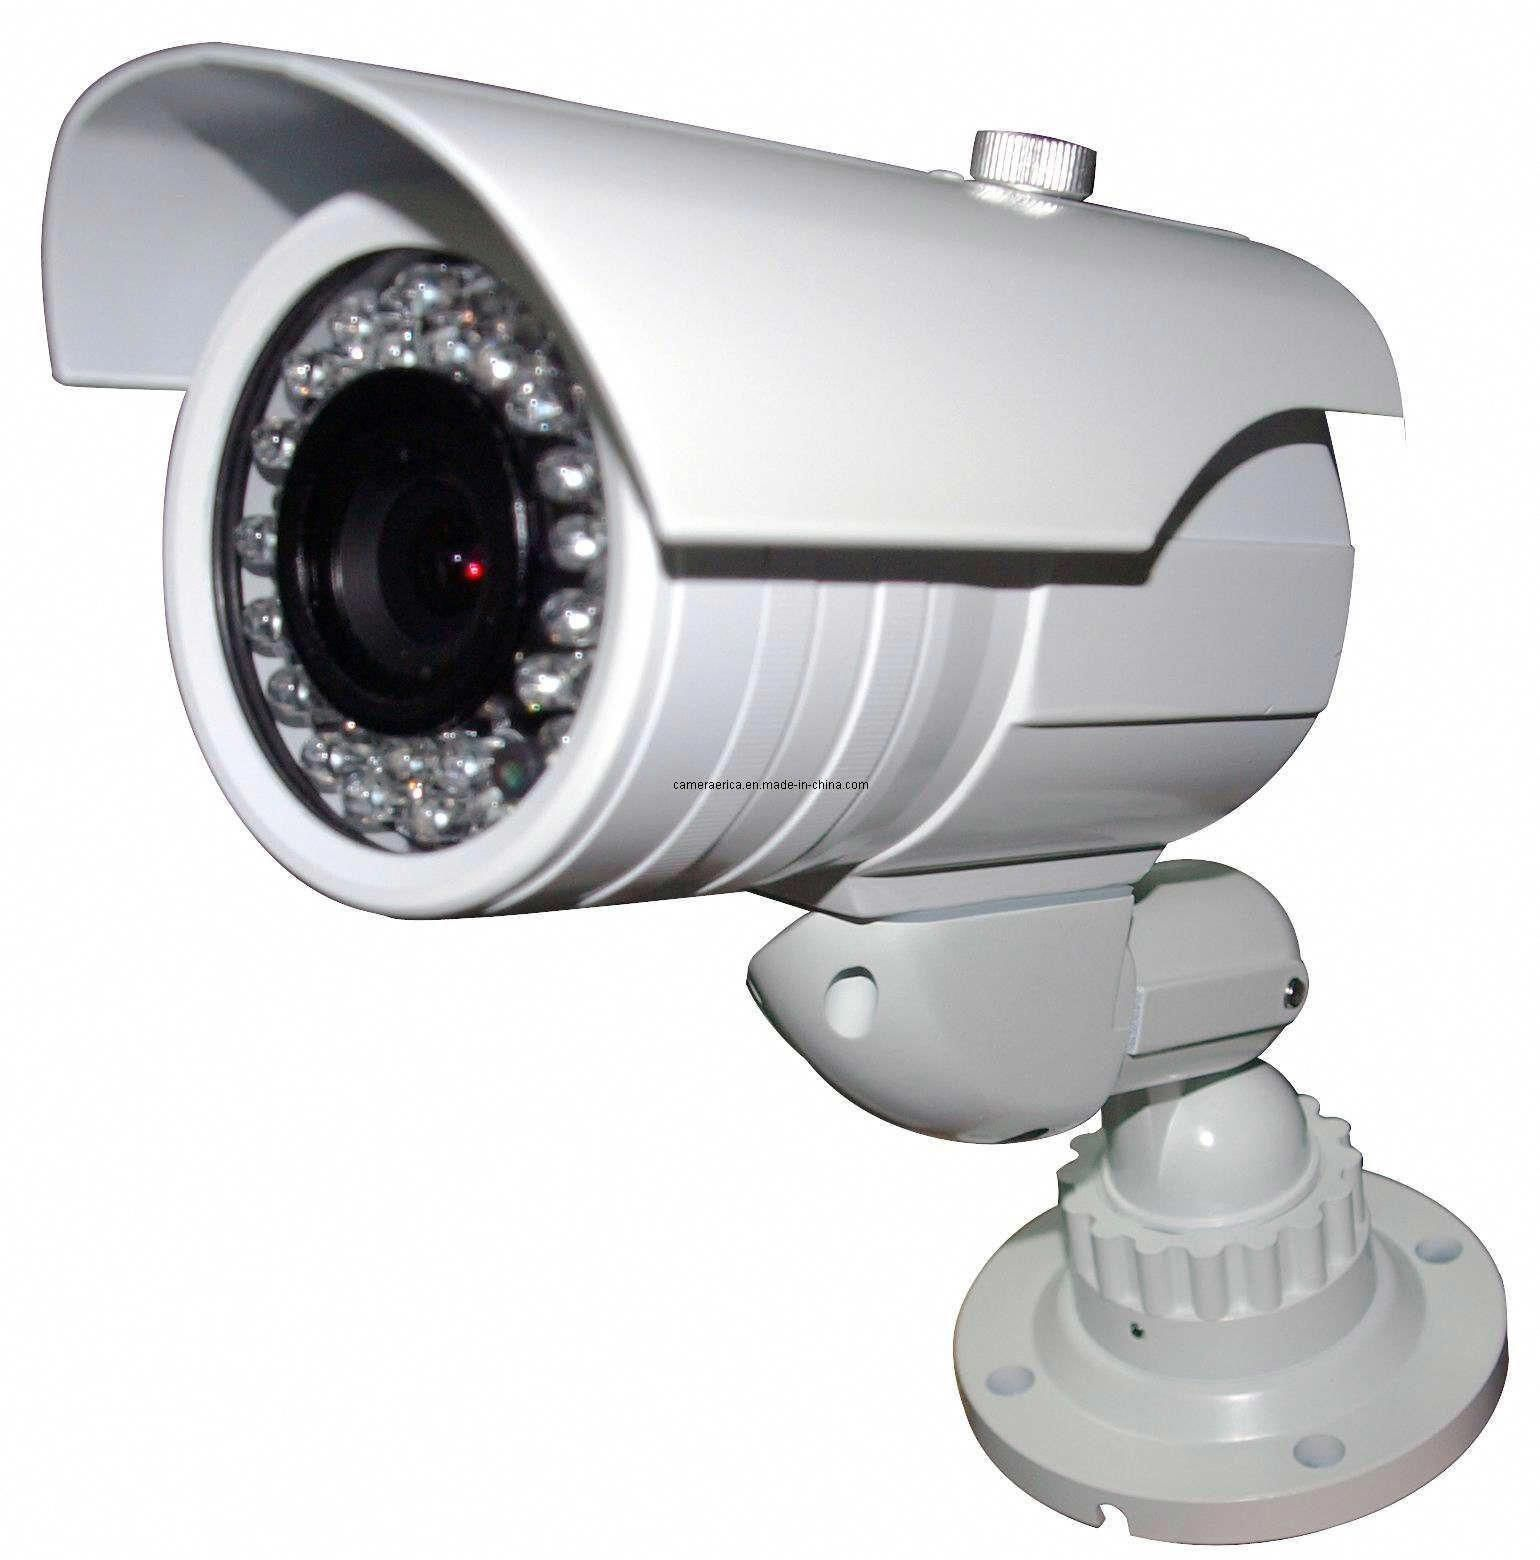 Security Camera Installs Sgi Offer Great Deals On Best Quality Hd Cctv Hd Sdi Cctv Systems Security In 2020 Wireless Home Security Home Security Tips Home Security